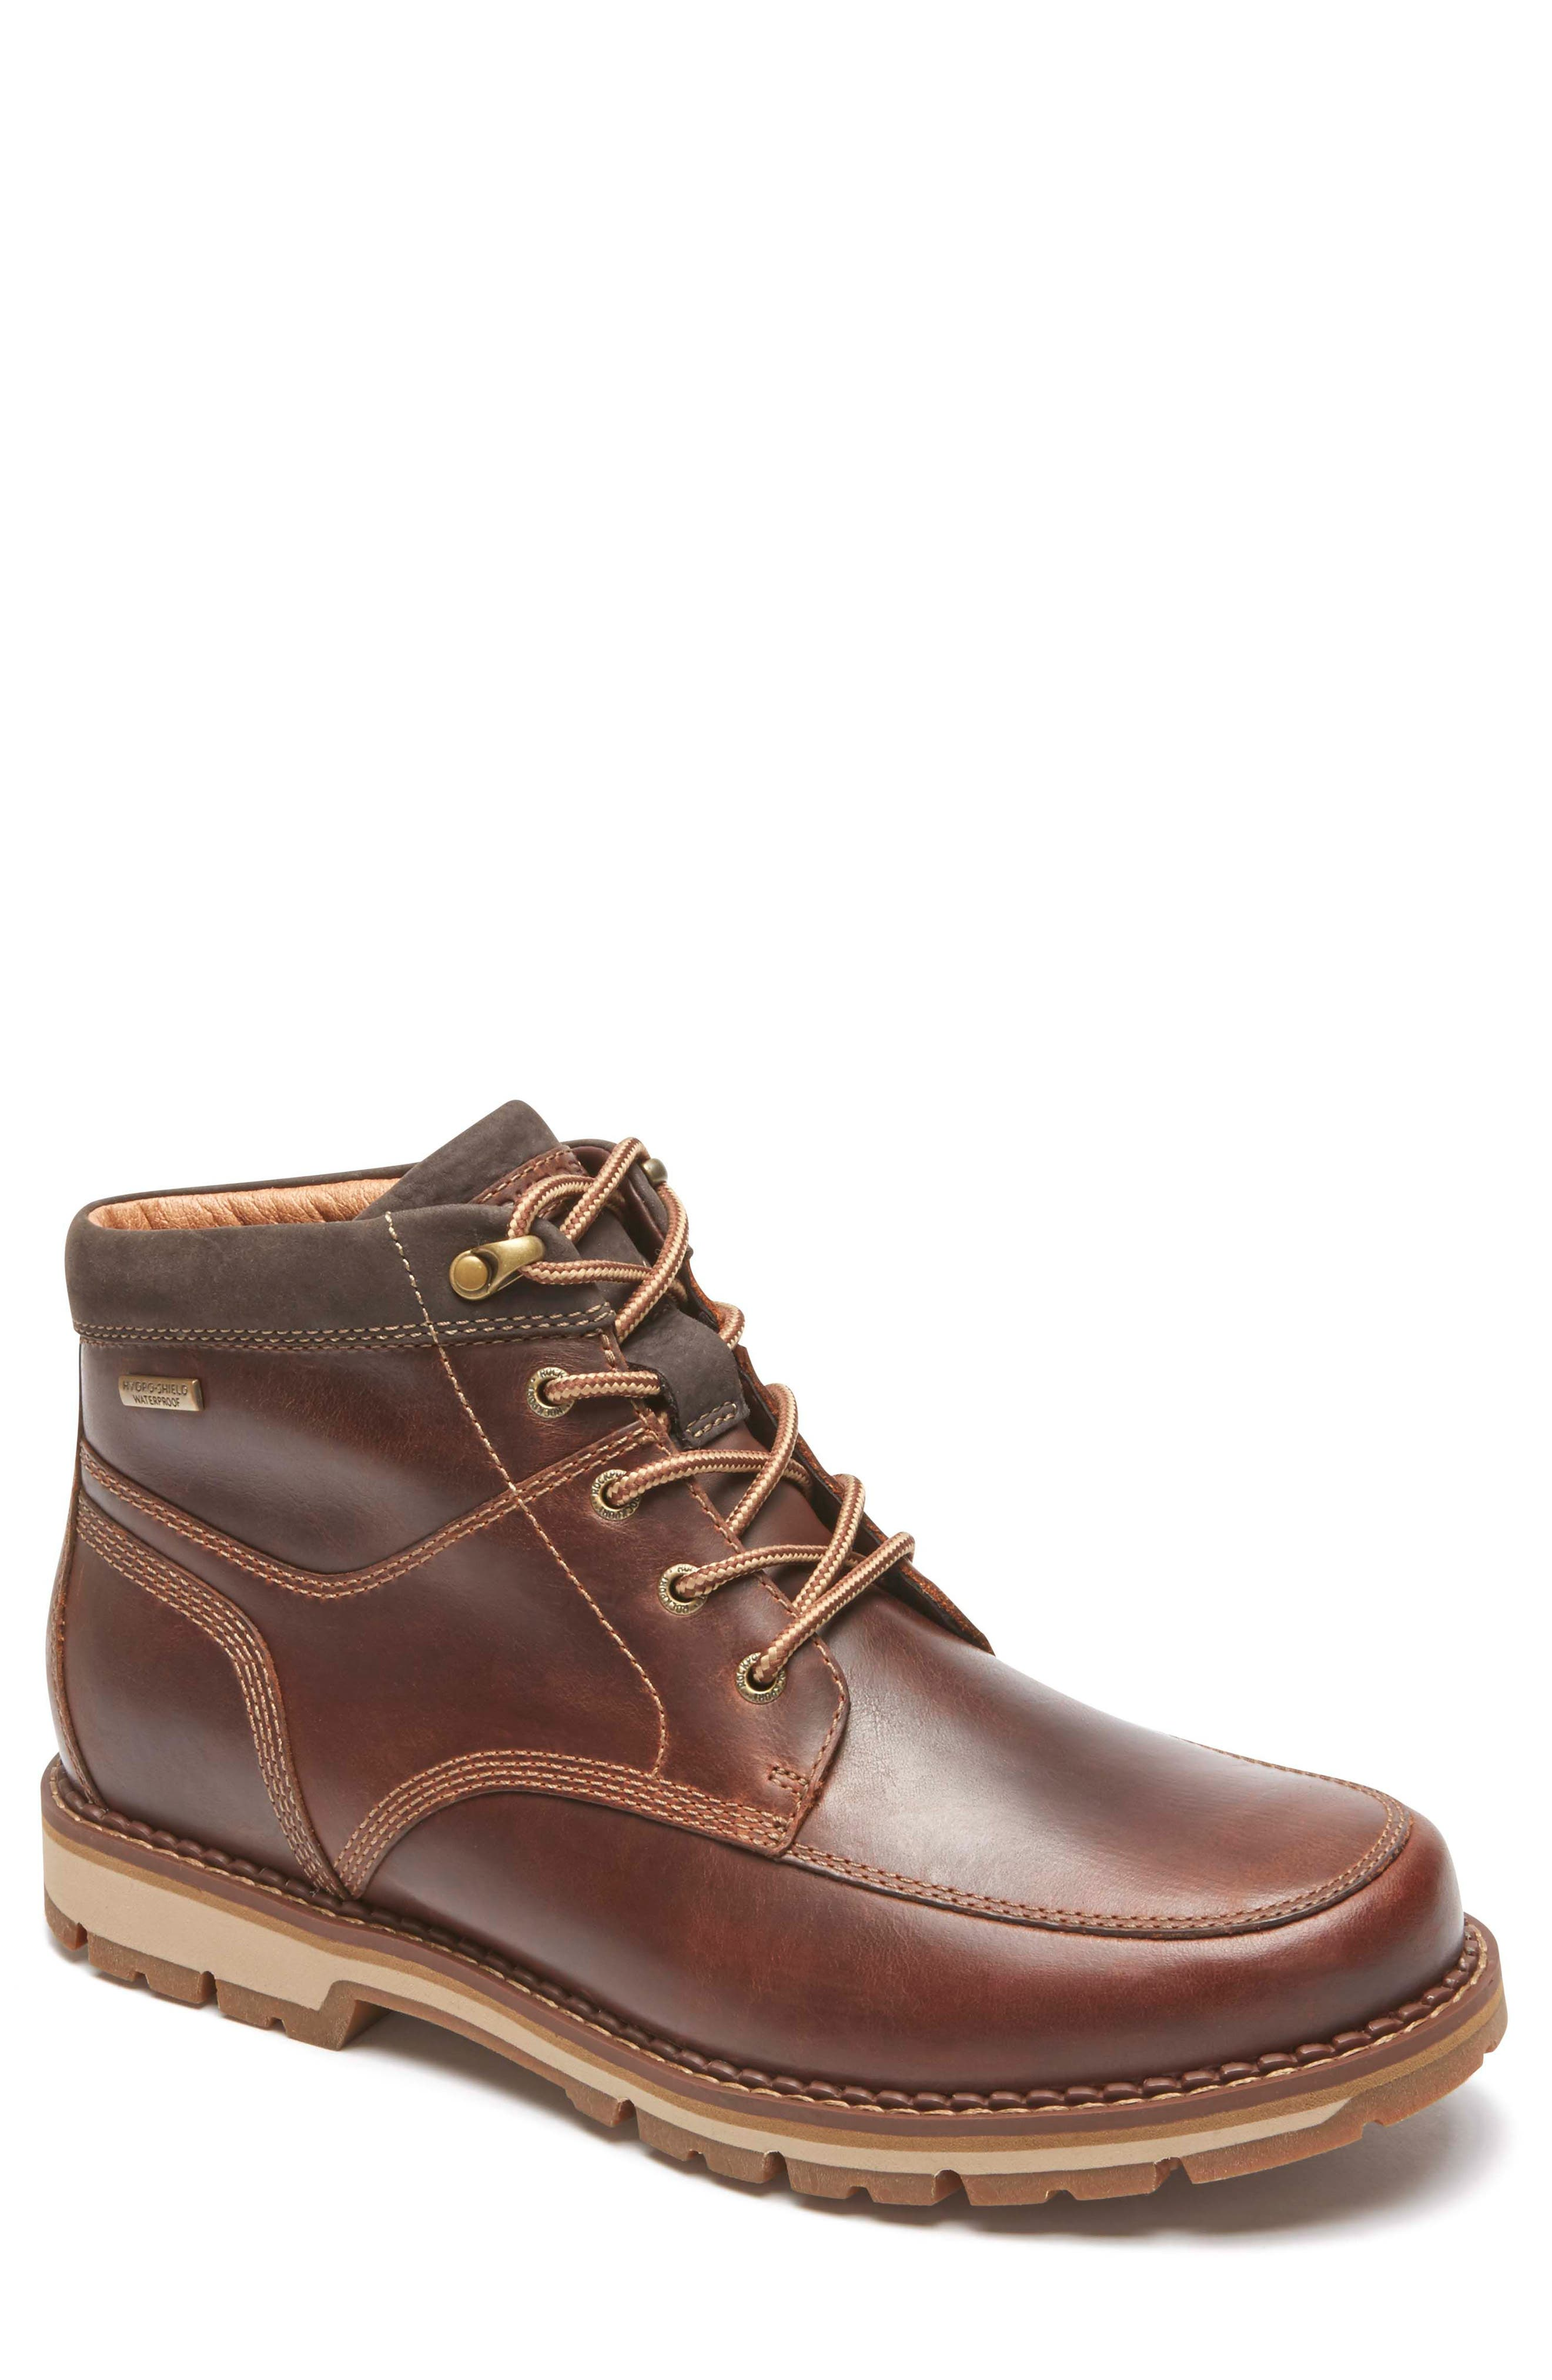 Centry Moc Toe Boot,                         Main,                         color, Brown Leather